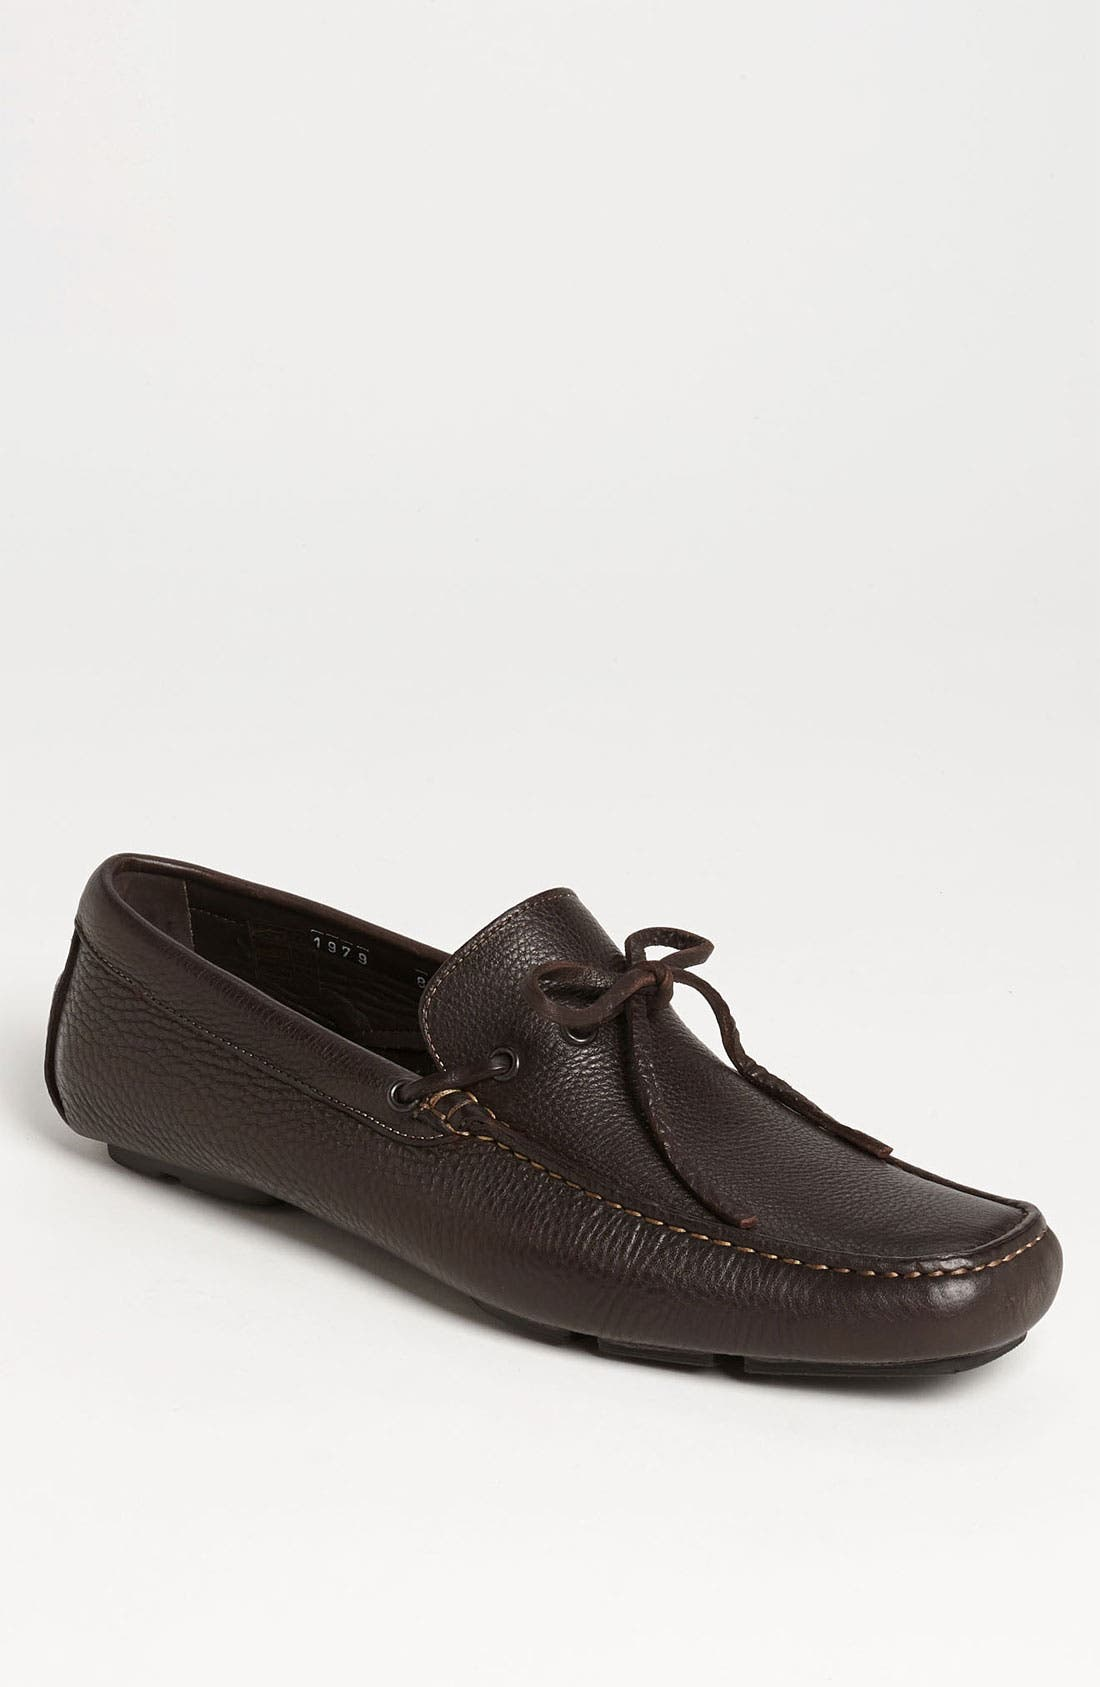 Alternate Image 1 Selected - To Boot New York 'Watson' Driving Shoe